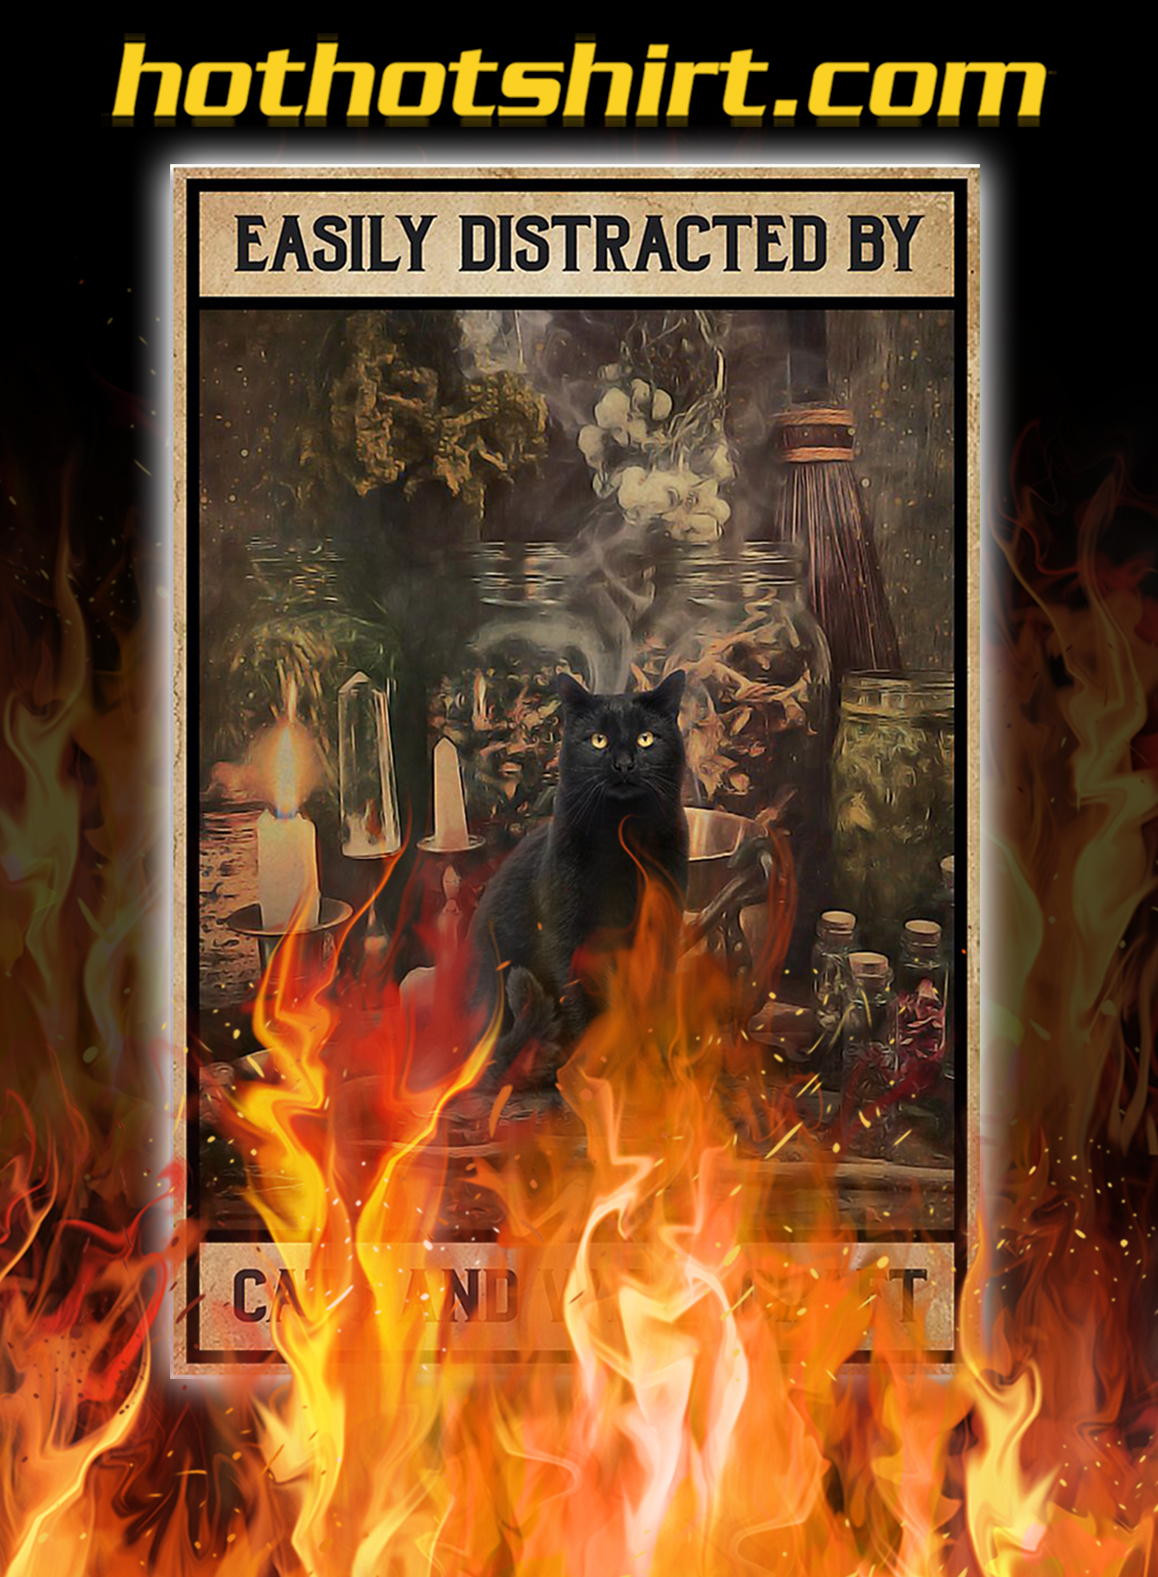 Easily distracted by cats and witchcraft poster - A3